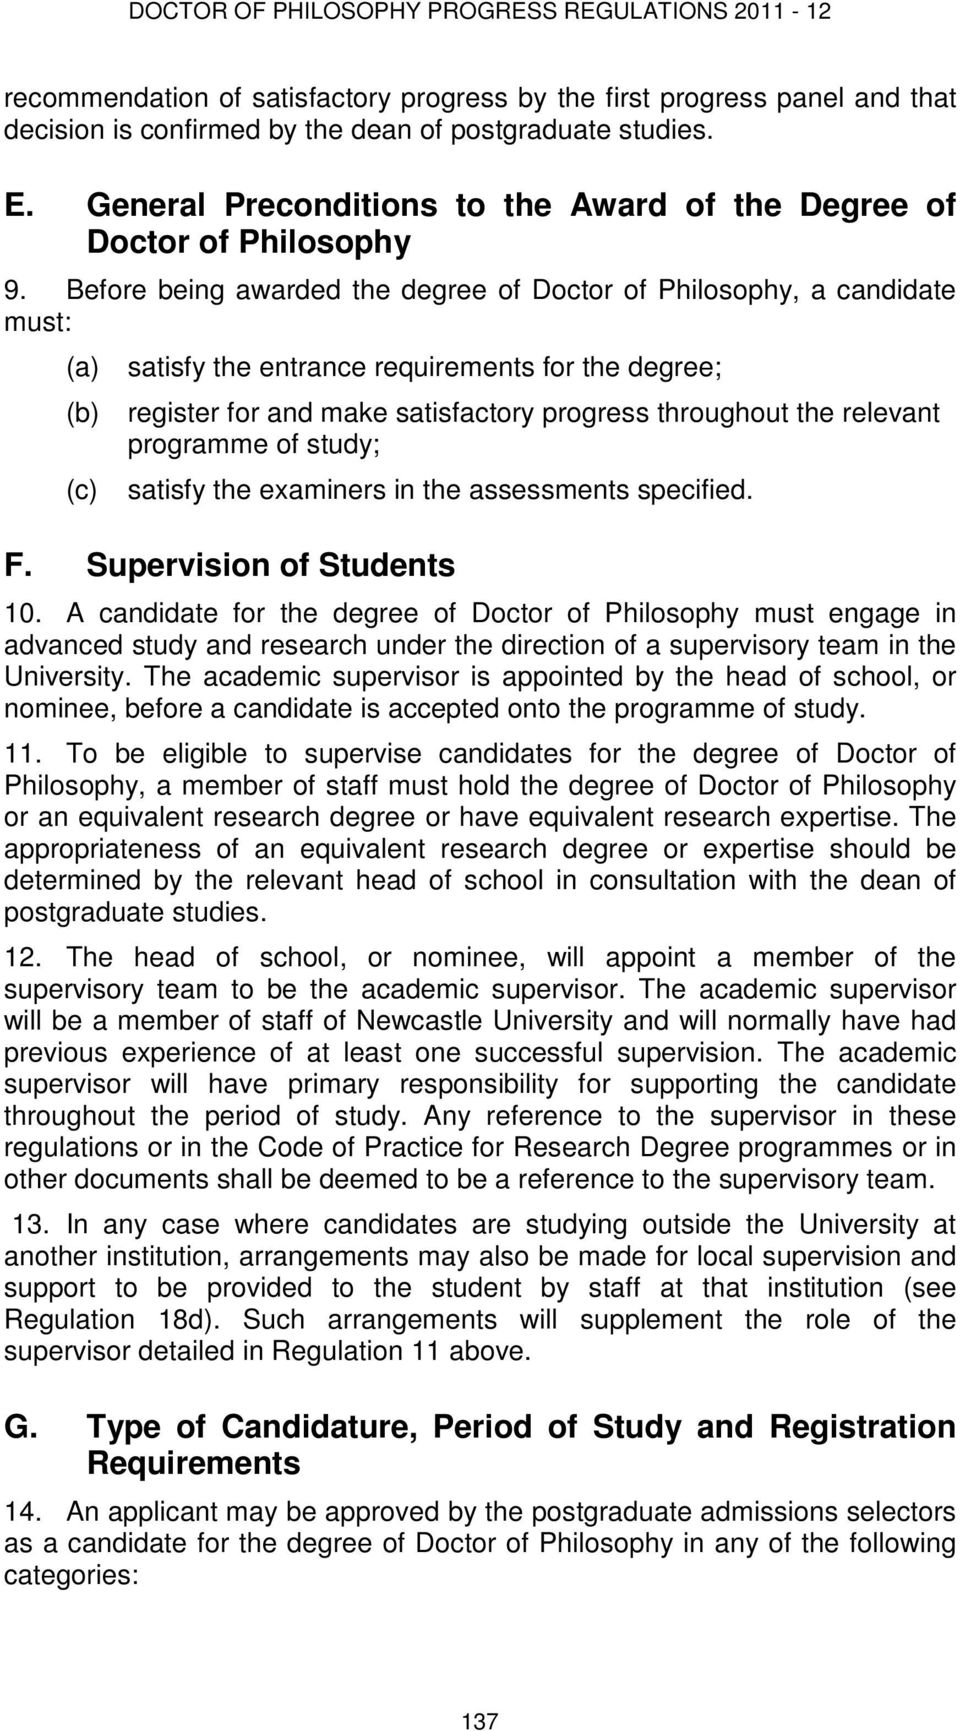 Before being awarded the degree of Doctor of Philosophy, a candidate must: satisfy the entrance requirements for the degree; register for and make satisfactory progress throughout the relevant